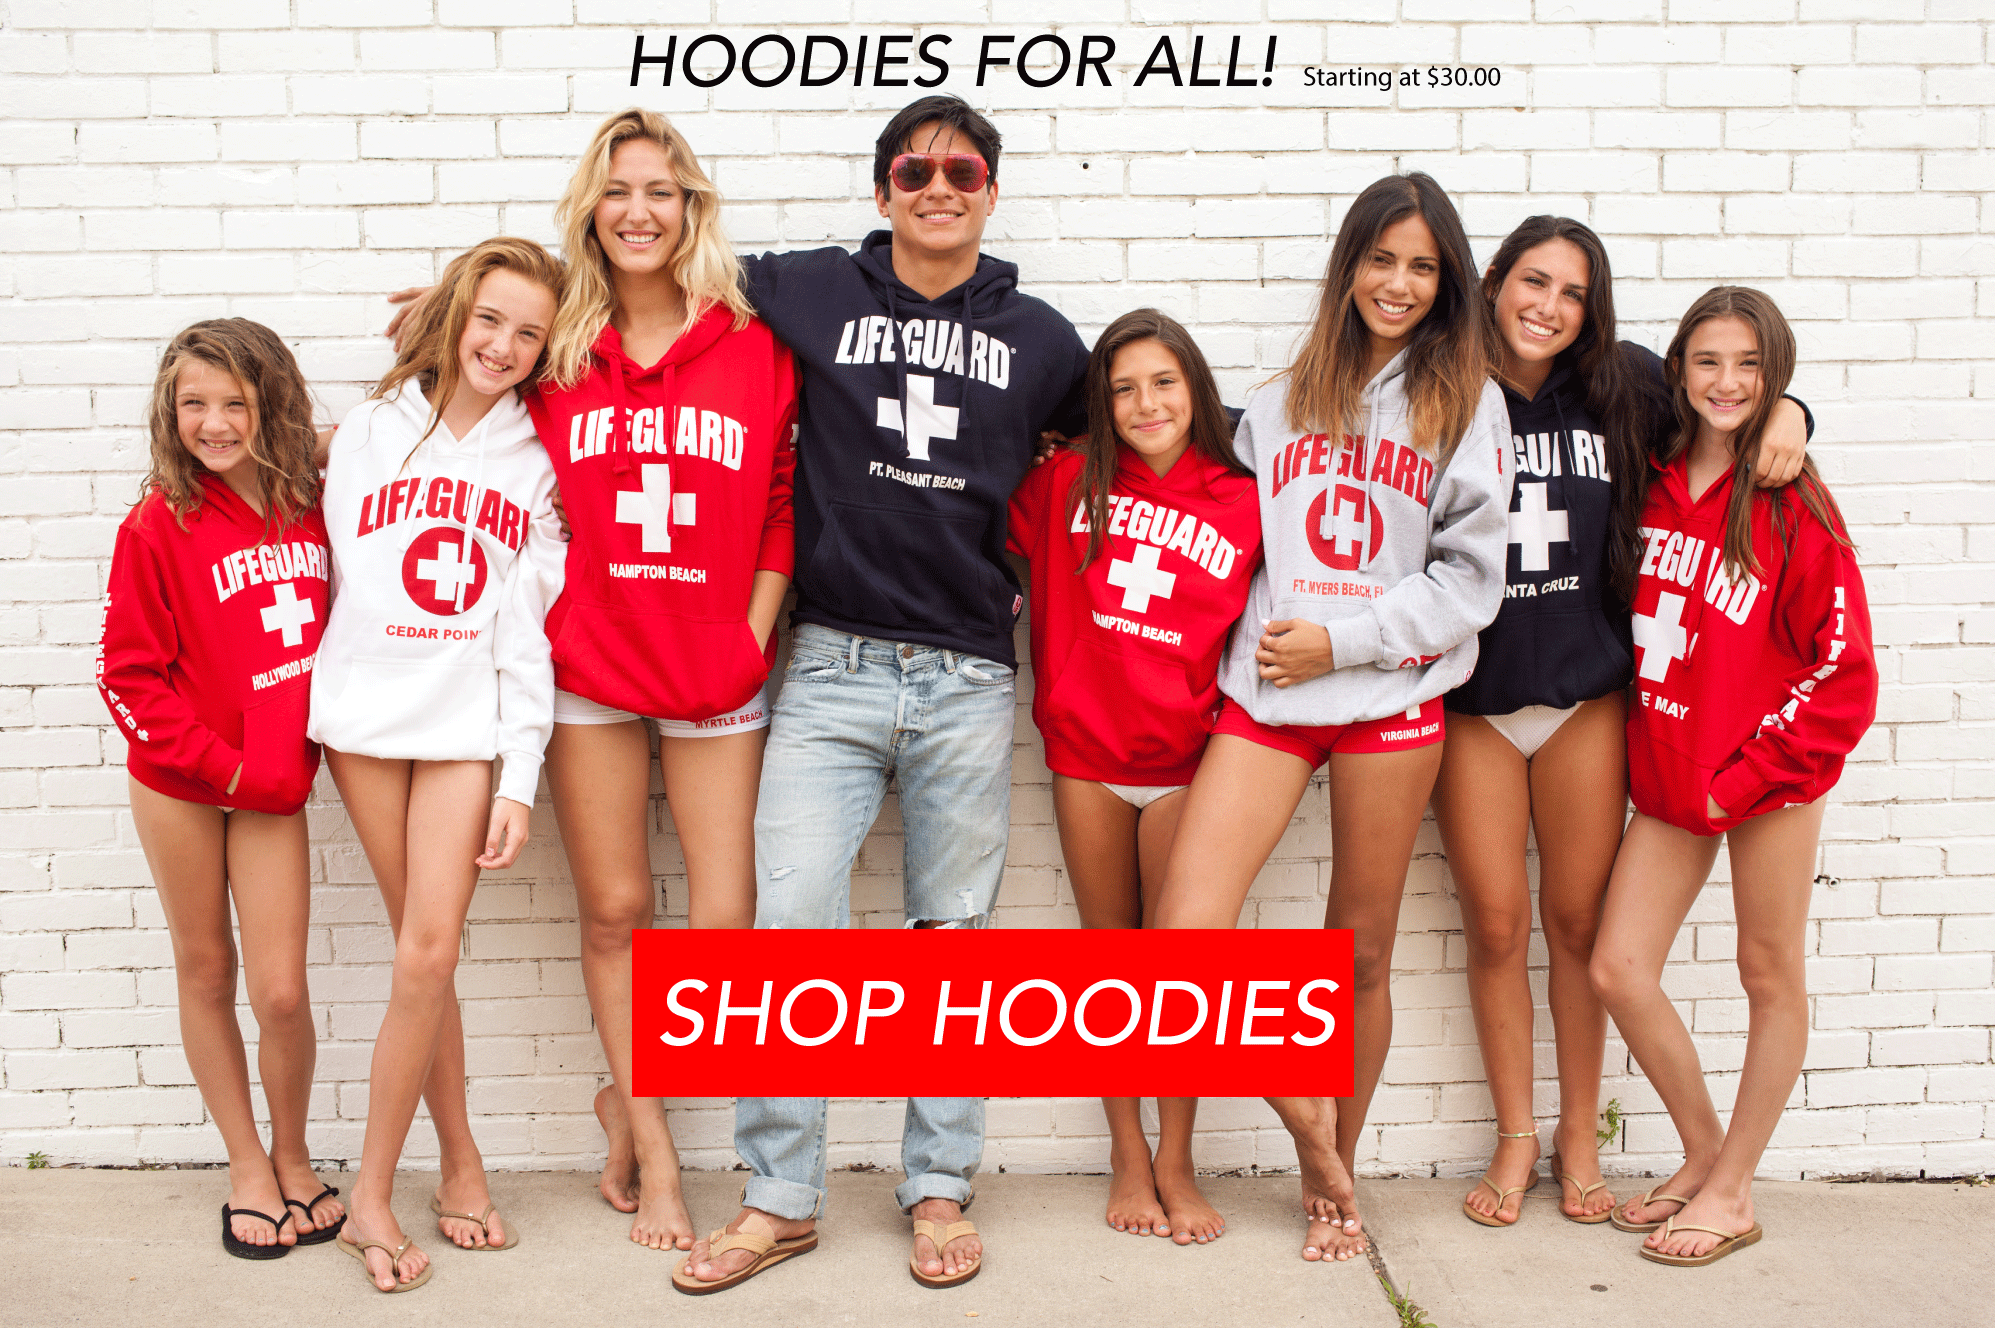 Lifeguard Apparel Collection | men, women, kids, youth, boys, girls